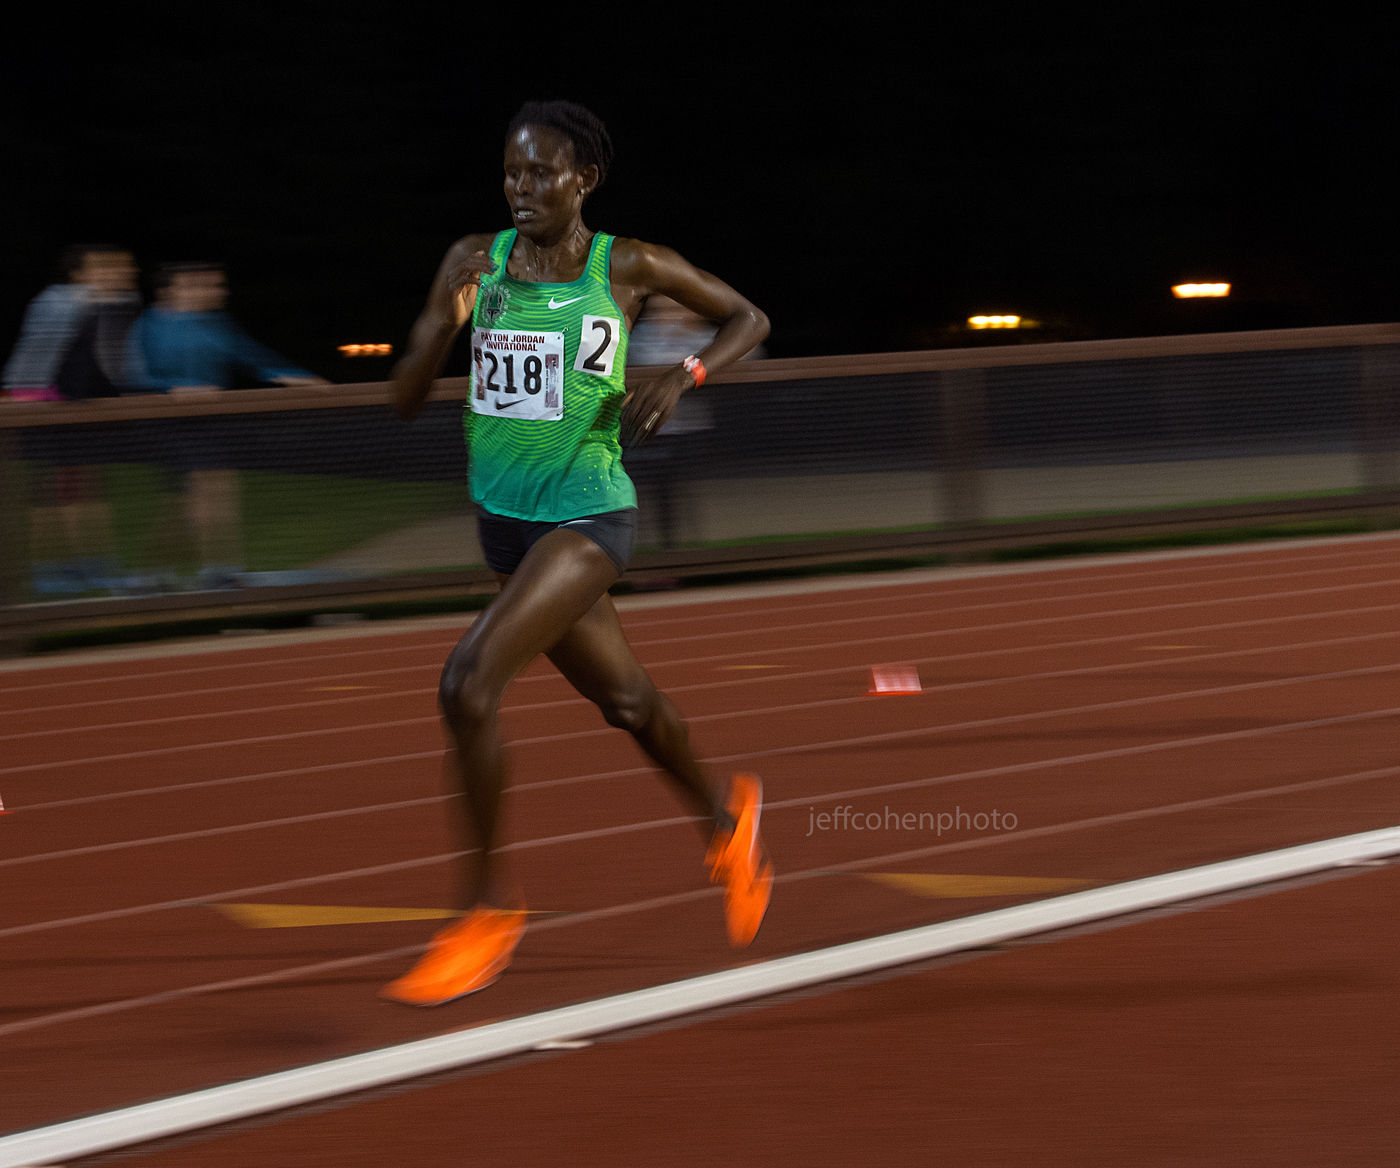 1payton_jordan_meet_sally_kipyego_5_1_16__jeff_cohen_photo_234_web.jpg